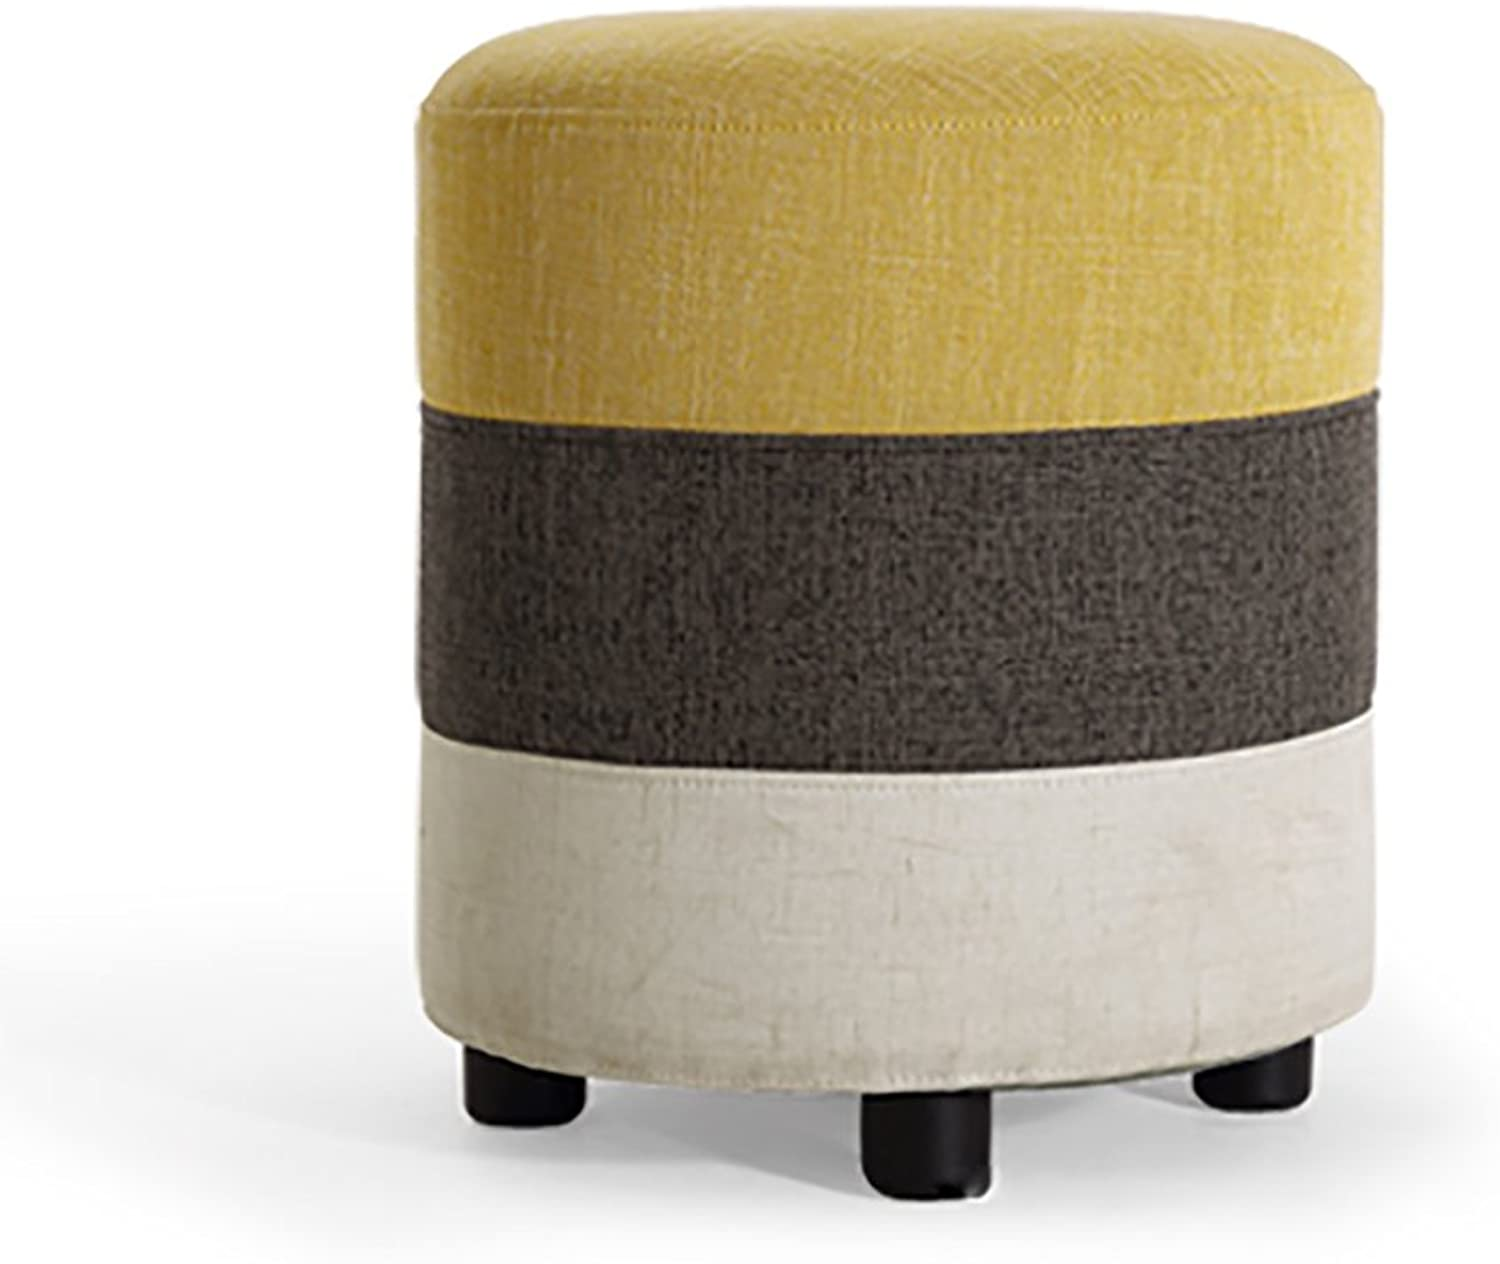 Round Stool Cloth Art Wooden Footstool Soft Package The Bedroom Dresser Dressing Stool Makeup Stool